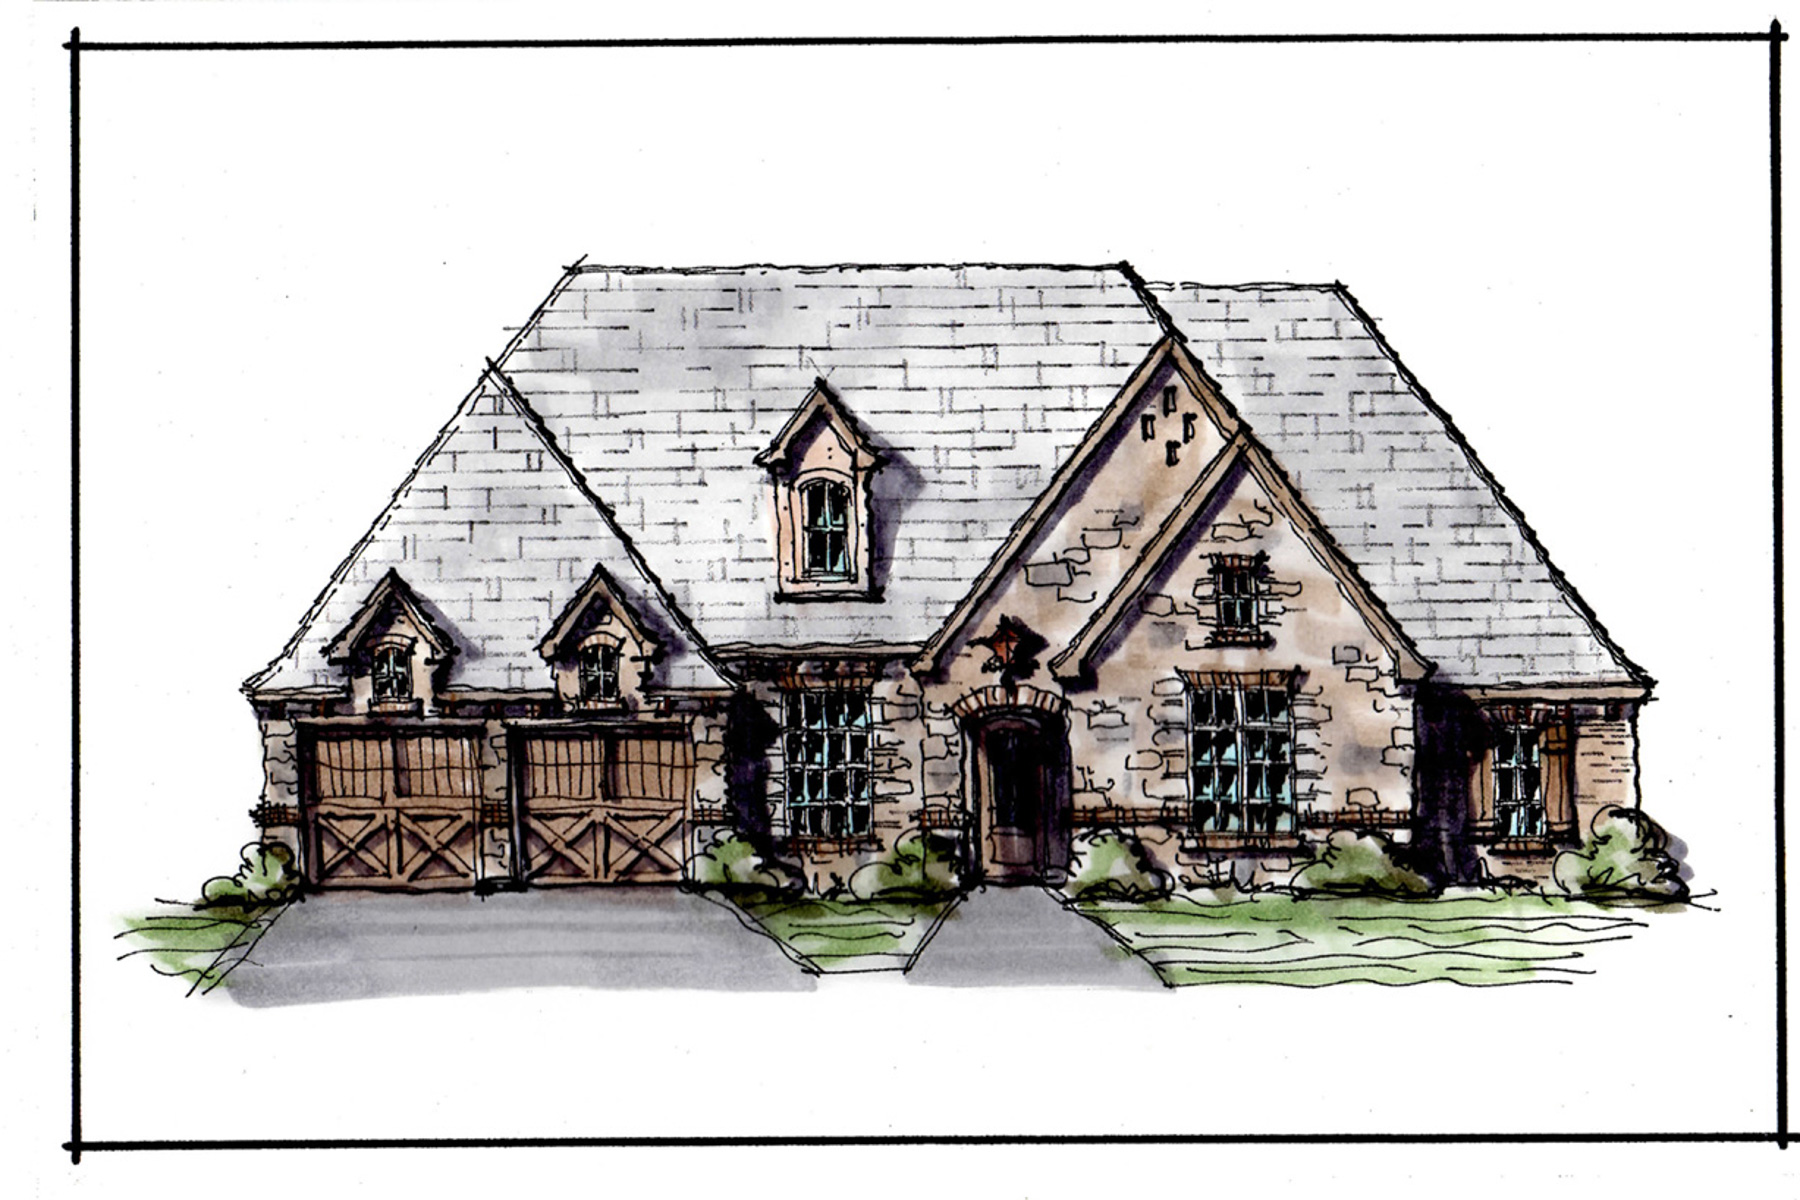 Single Family Home for Sale at New Costruction at La Cantera 8509 Tierra Ct Fort Worth, Texas, 76126 United States